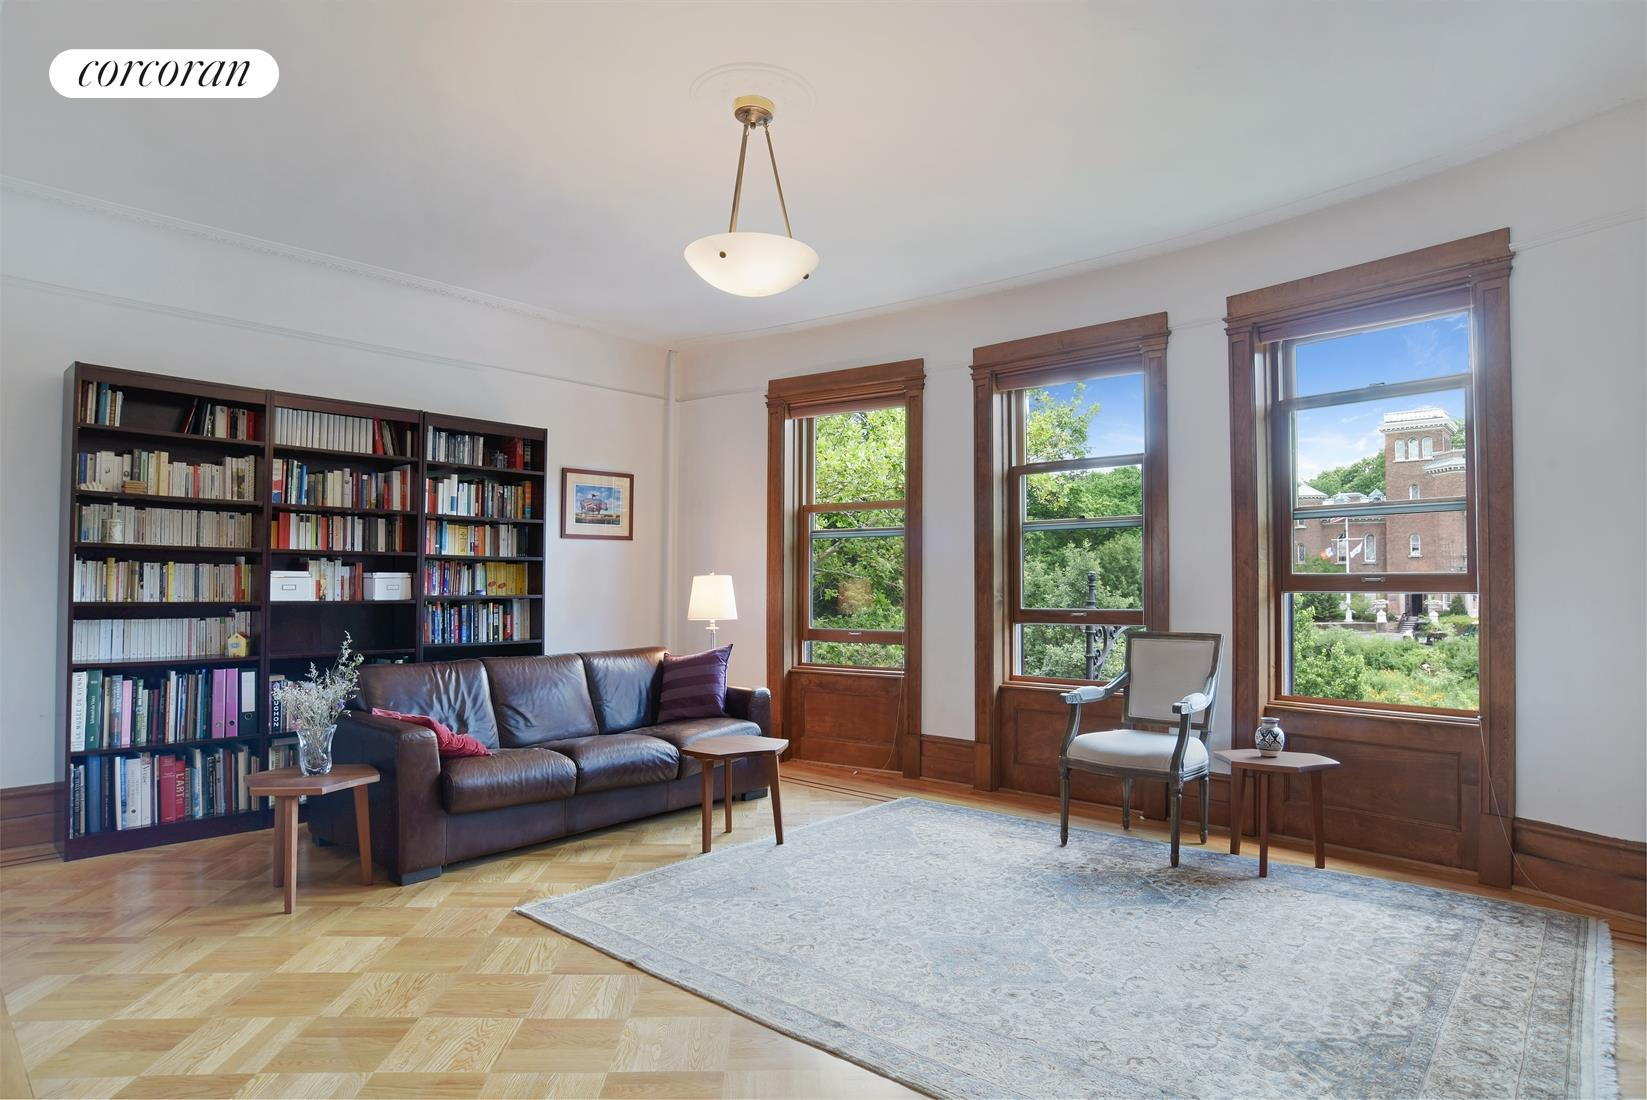 90 Prospect Park West, 3R, Professionally decked and landscaped outdoor space